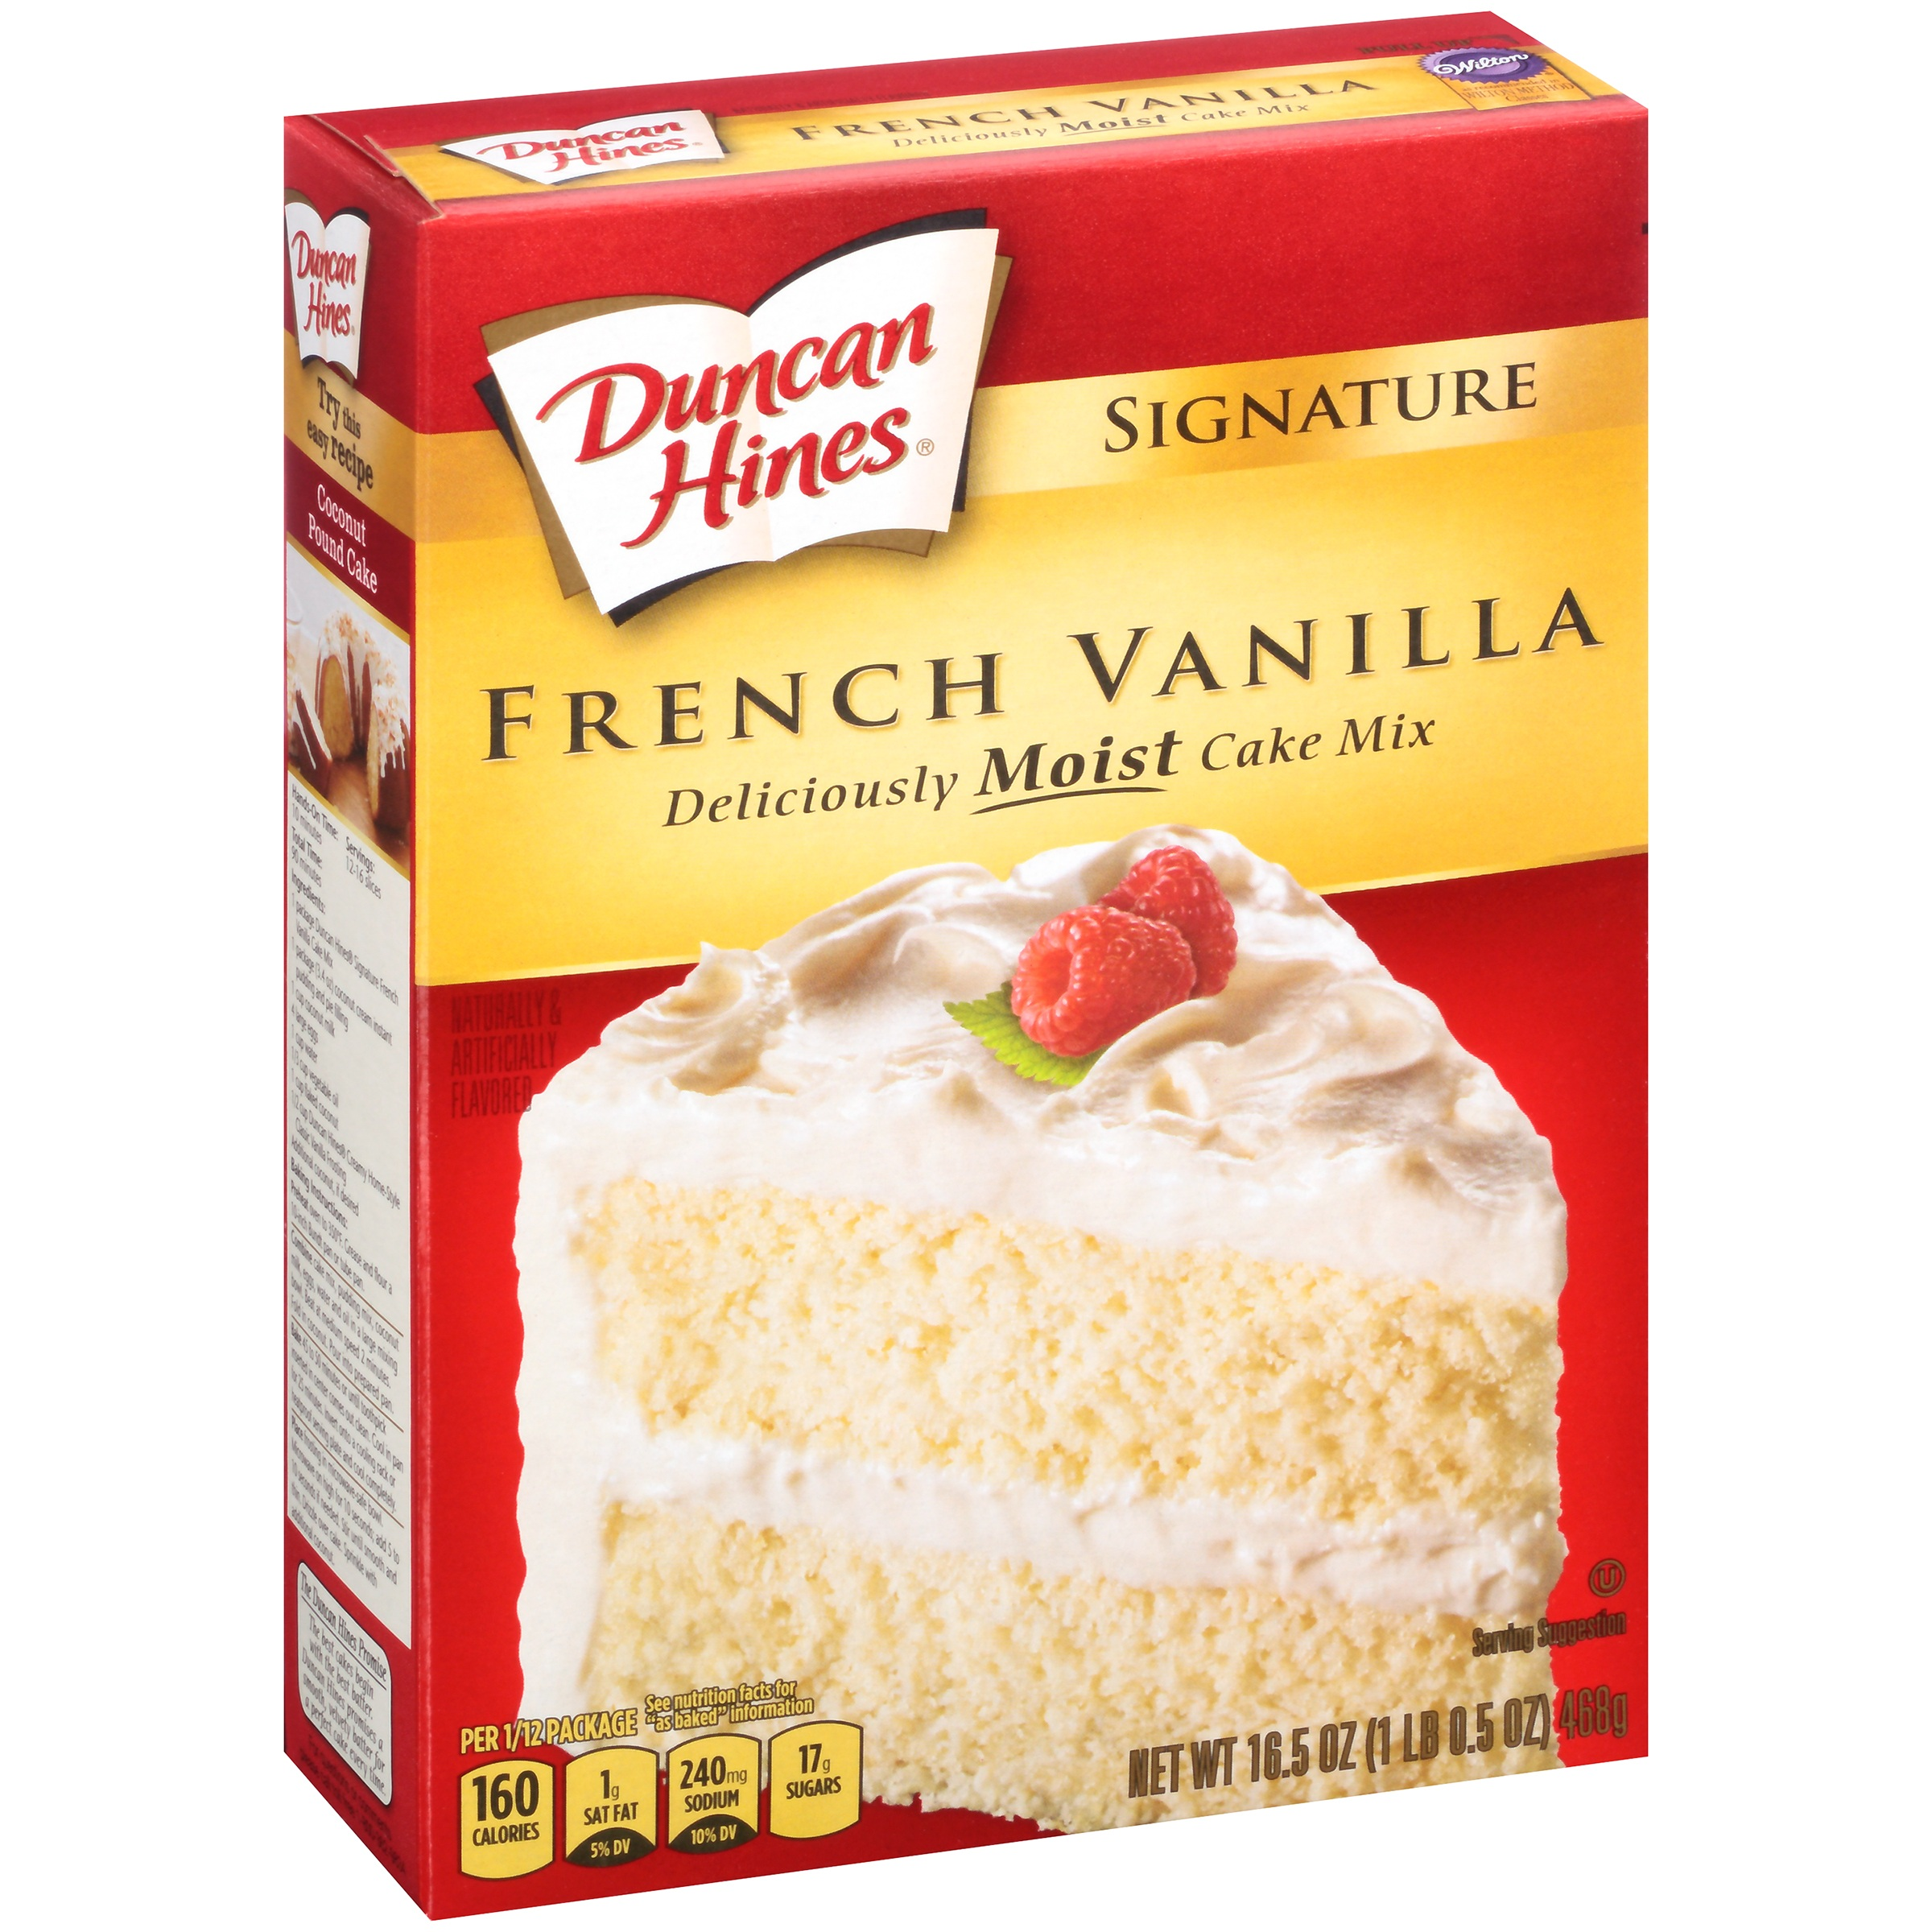 Duncan Hines Signature French Vanilla Deliciously Moist Cake Mix, 16.5 oz